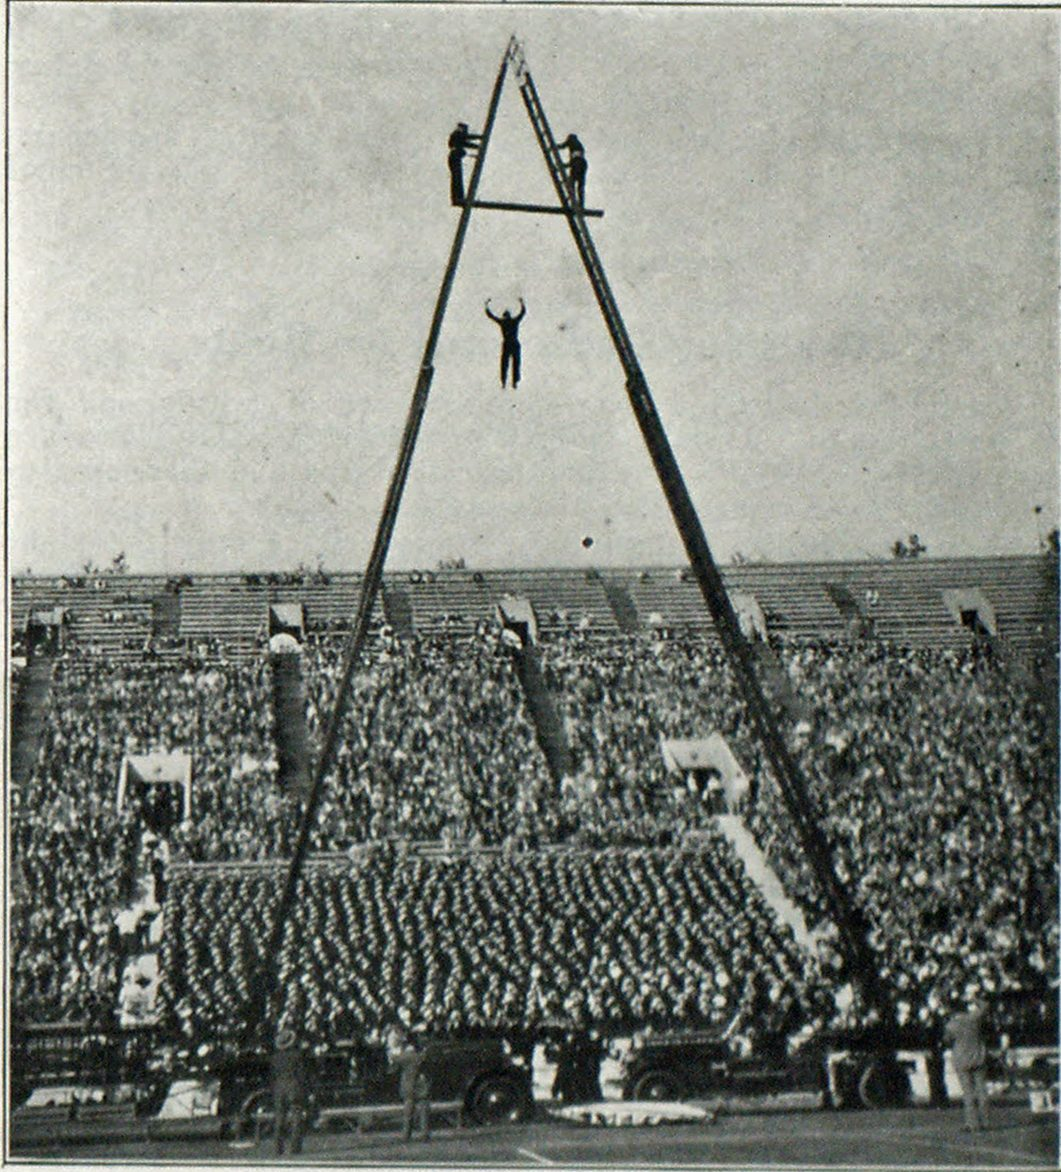 Los Angeles Firemen Show Skill at Annual Games Members of the Los Angeles, Cal., fire and police departments held their annual contests and games in the Coliseum to show their skill. The photograph shows a fireman dropping straight down from a height of one hundred feet into a fire net held by his comrades below. There was a good size crowd to watch the contests.